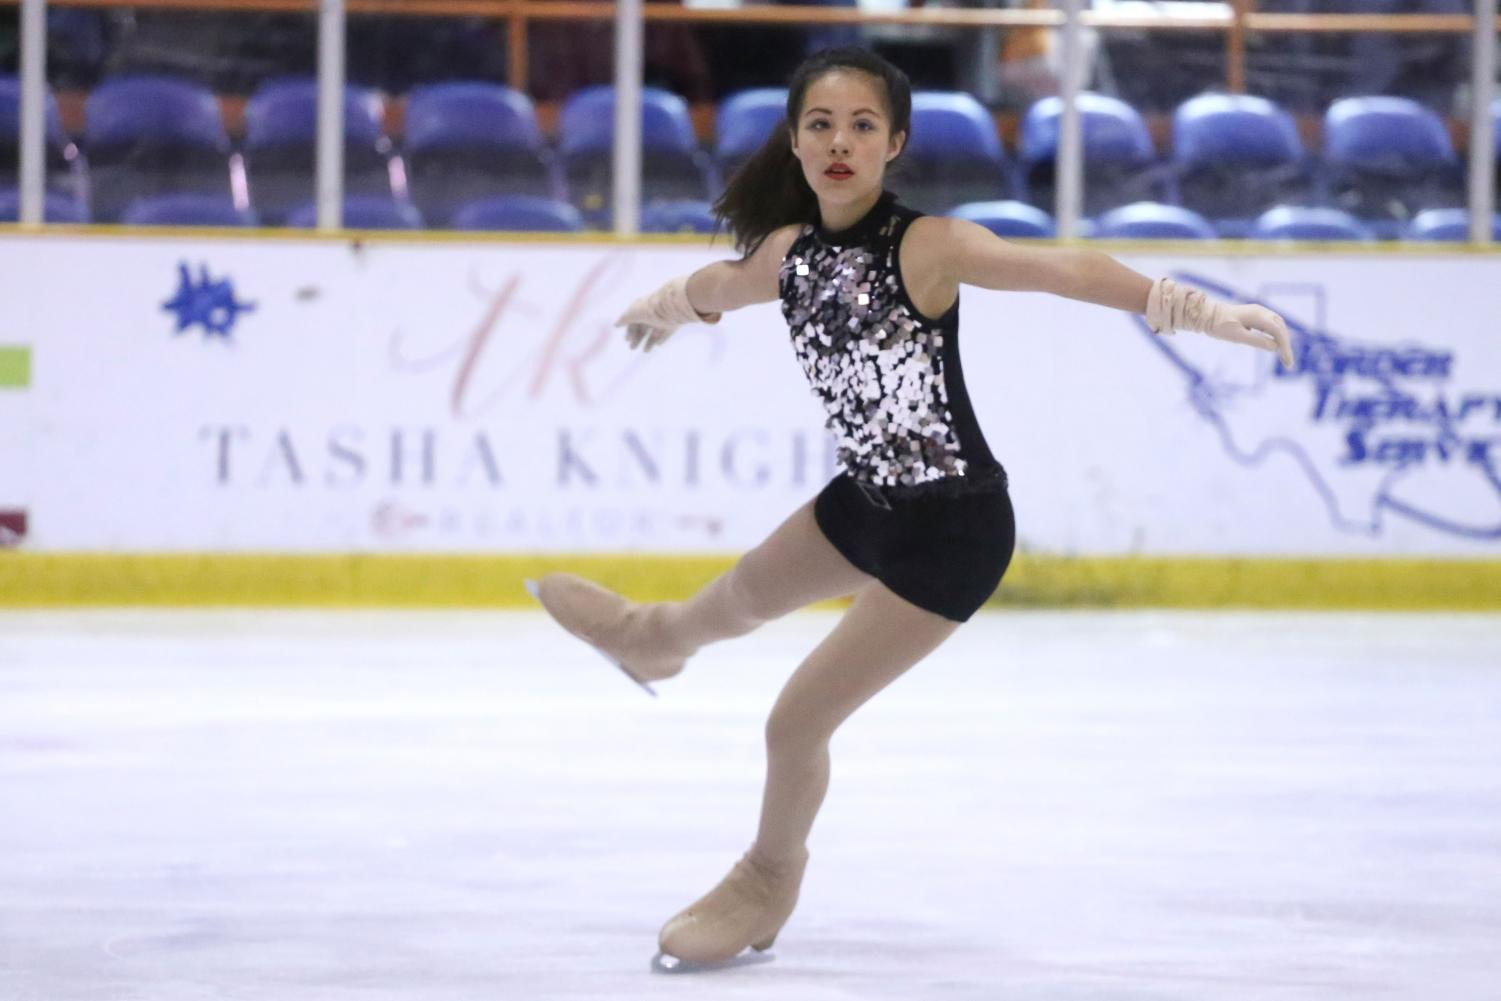 Performer+has+been+skating+for+only+two+years%2C+but+has+been+traveling+for+figure+skating+competitions.+